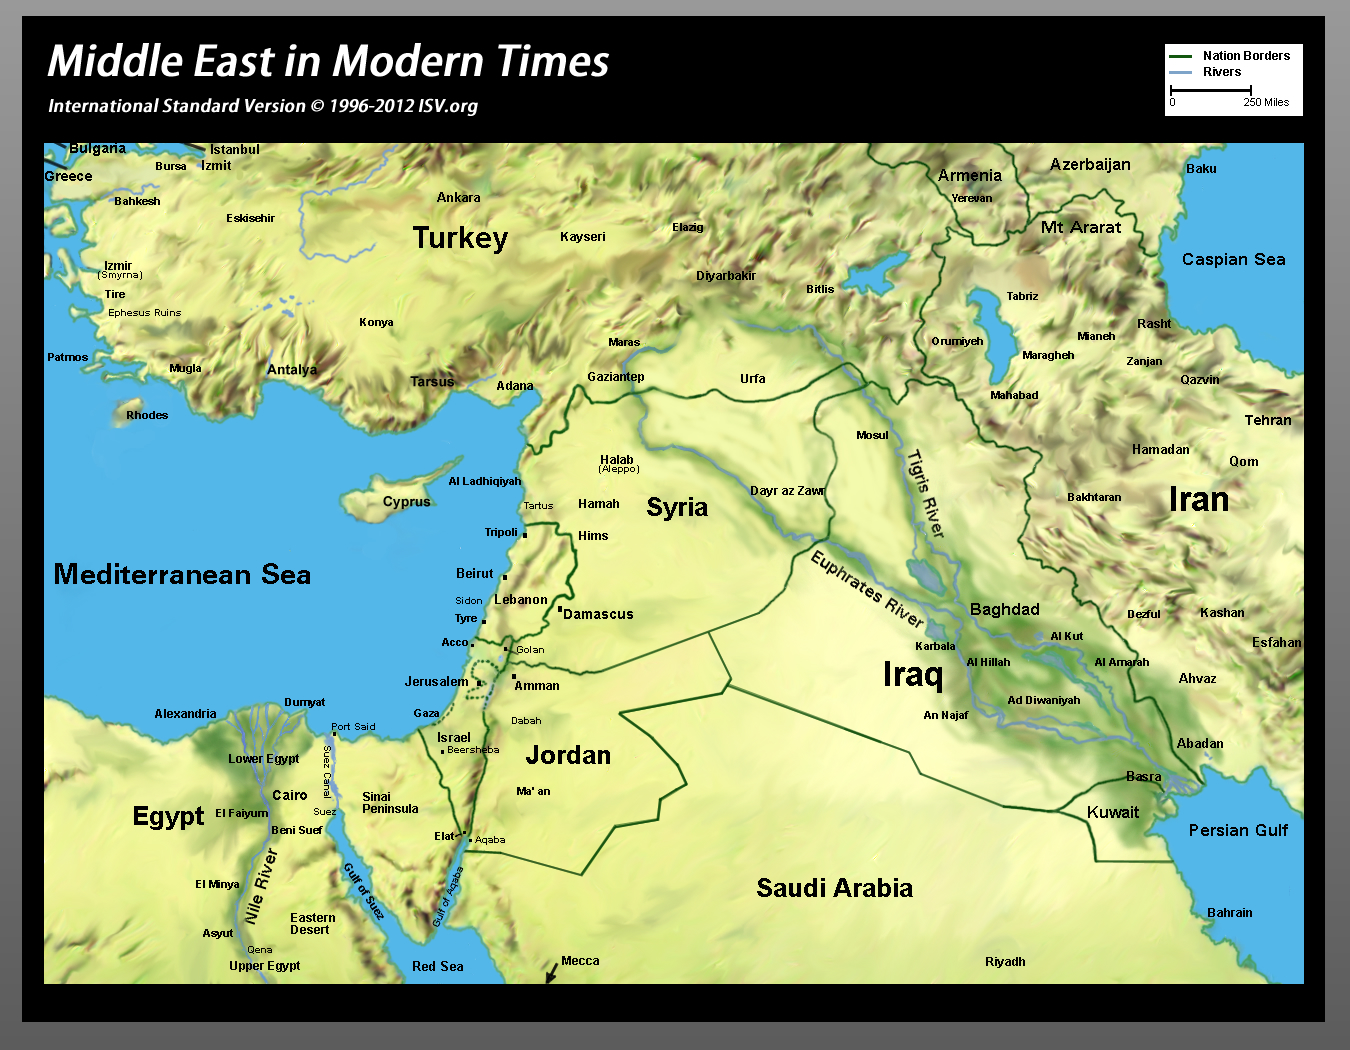 Middle East Map Bible Times | Time Zones Map on ancient near east map, egypt map, early church map, poetry map, thanksgiving map, reference map, reformation map, preschool map, christmas map, mediterranean europe map, fiction map, middle east map, life map, tower of babel map, new testament church map, biblical asia minor map, new testament times map, rolled up map, old testament map,